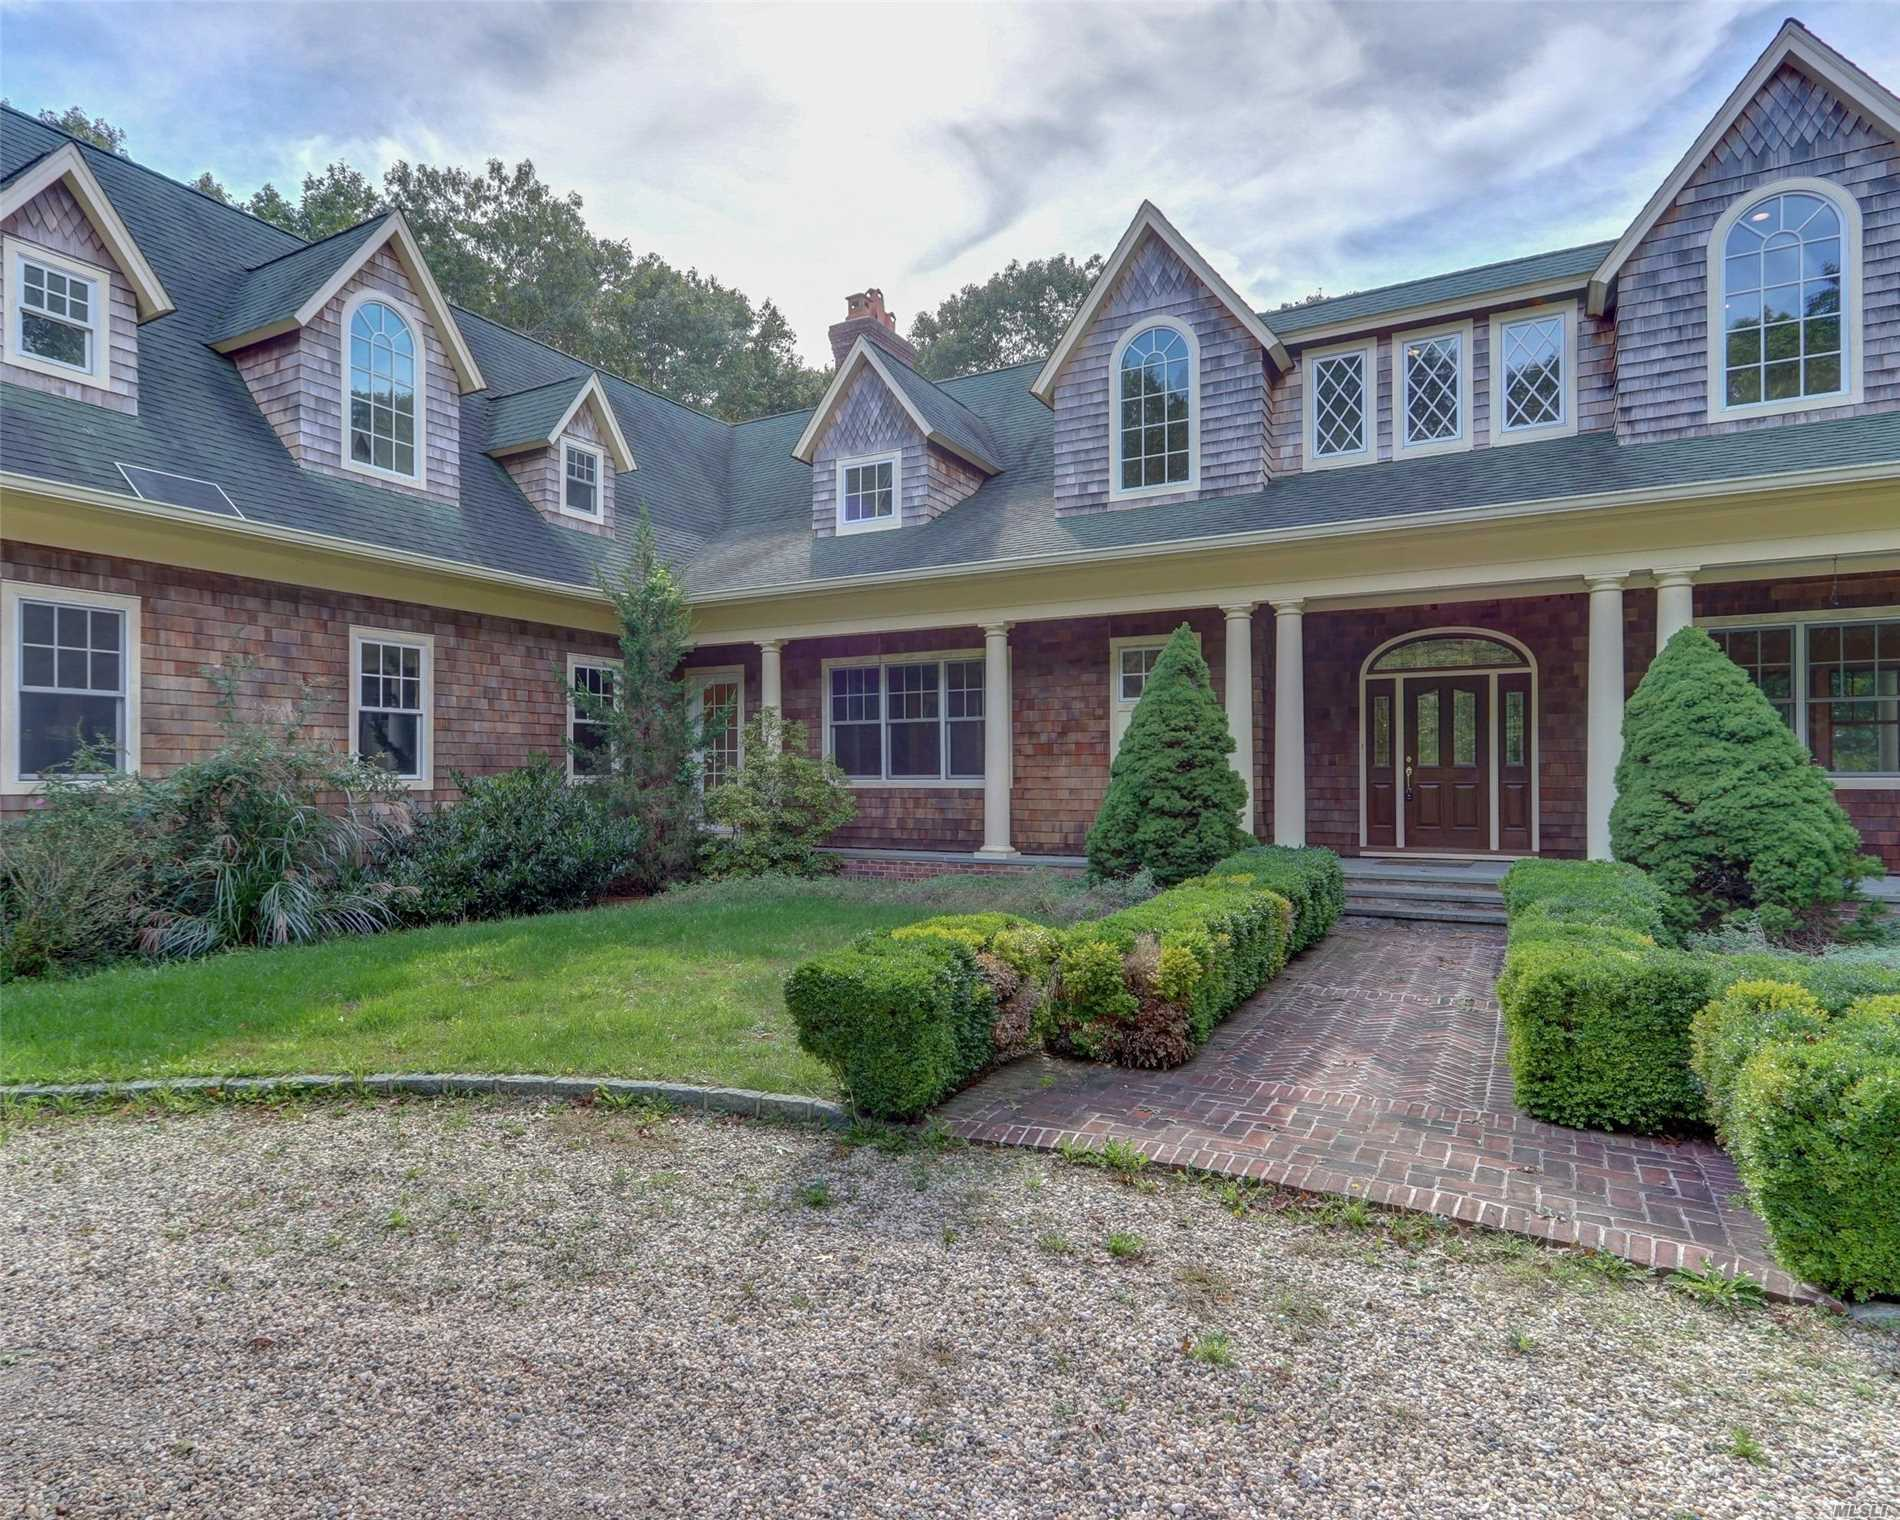 Traditional Masterpiece Beautifully Set Back On Over An Acre Of Lush Property, This Exceptional 5200 Sf Structure Has A Bathroom In Each Bedroom, 4 Fireplaces, 3 Car Garage And Artistic Circular Driveway. Unbelievable Opportunity, Exquisite In Its Design!